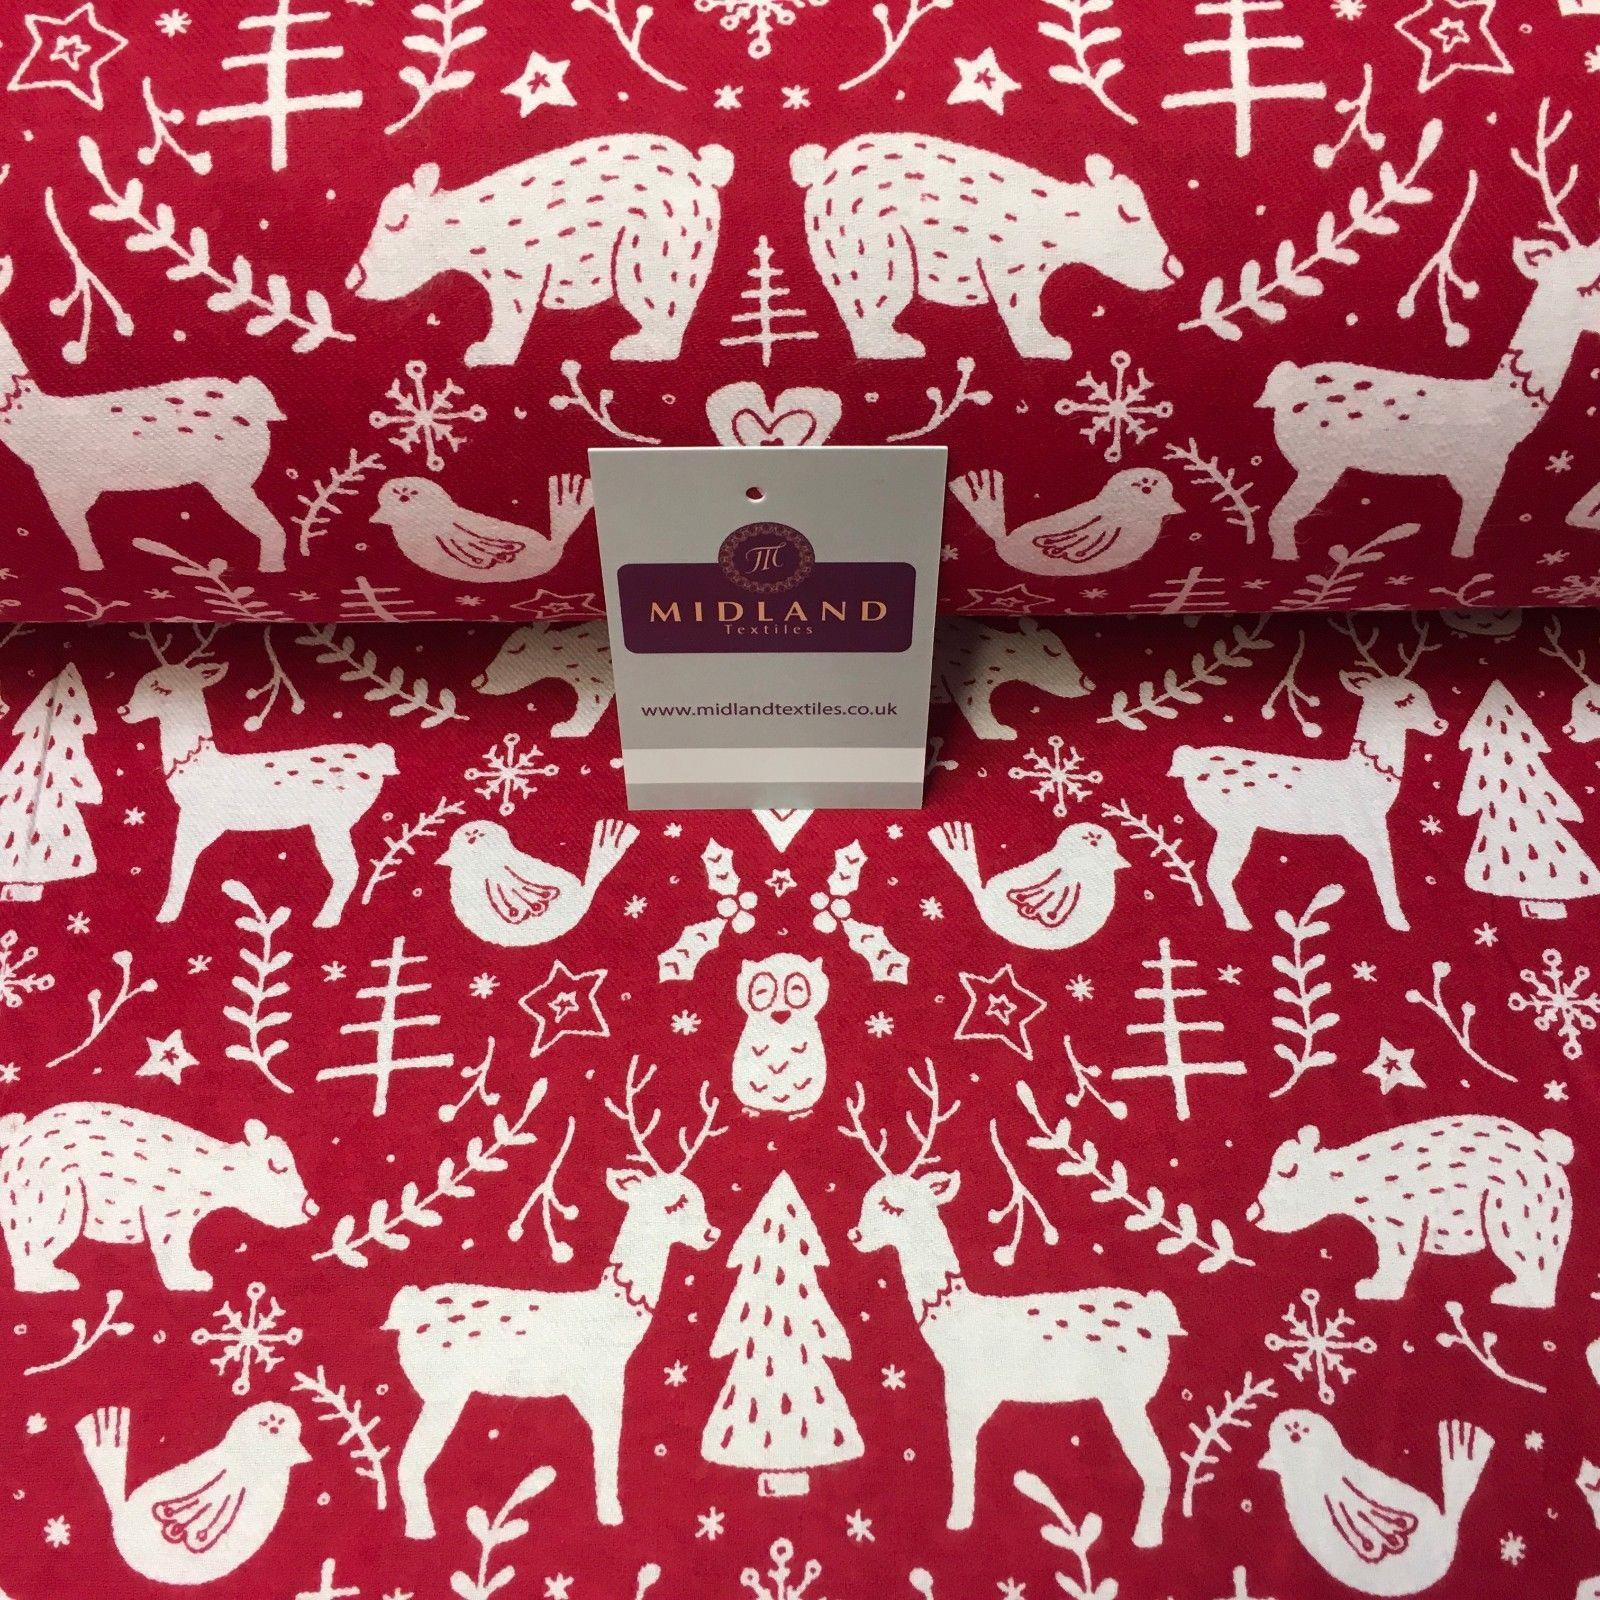 "Red Christmas Theme Cotton Wynciette Soft Brushed Flannel Fabric 56"" MK988-16"